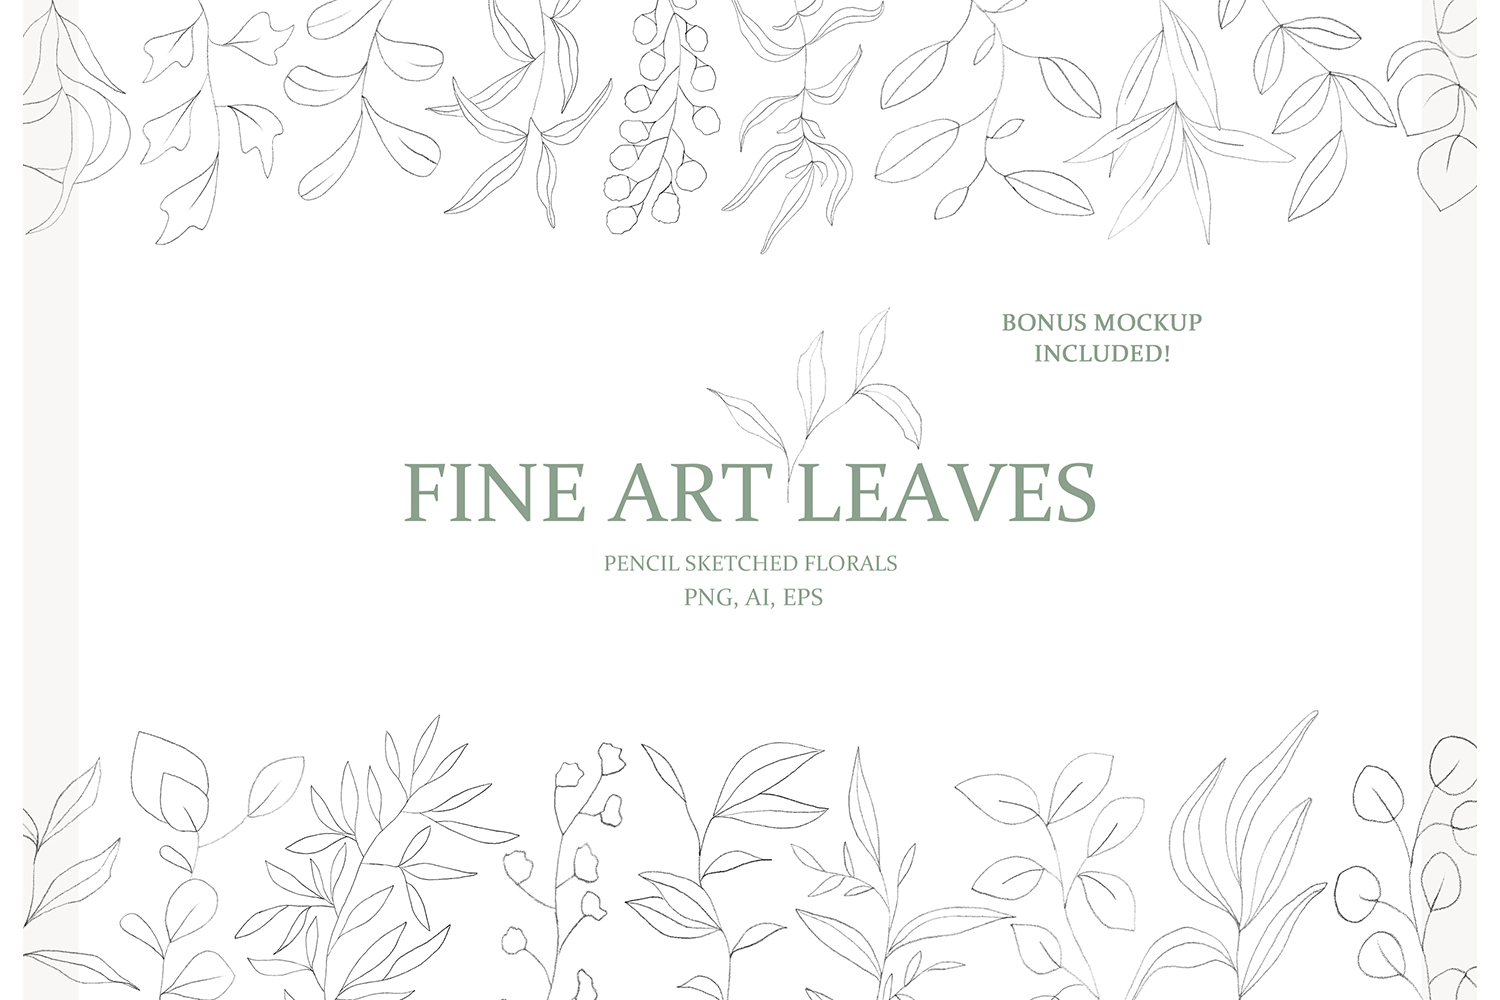 Fine Art Leaves - Pencil Sketches example image 1